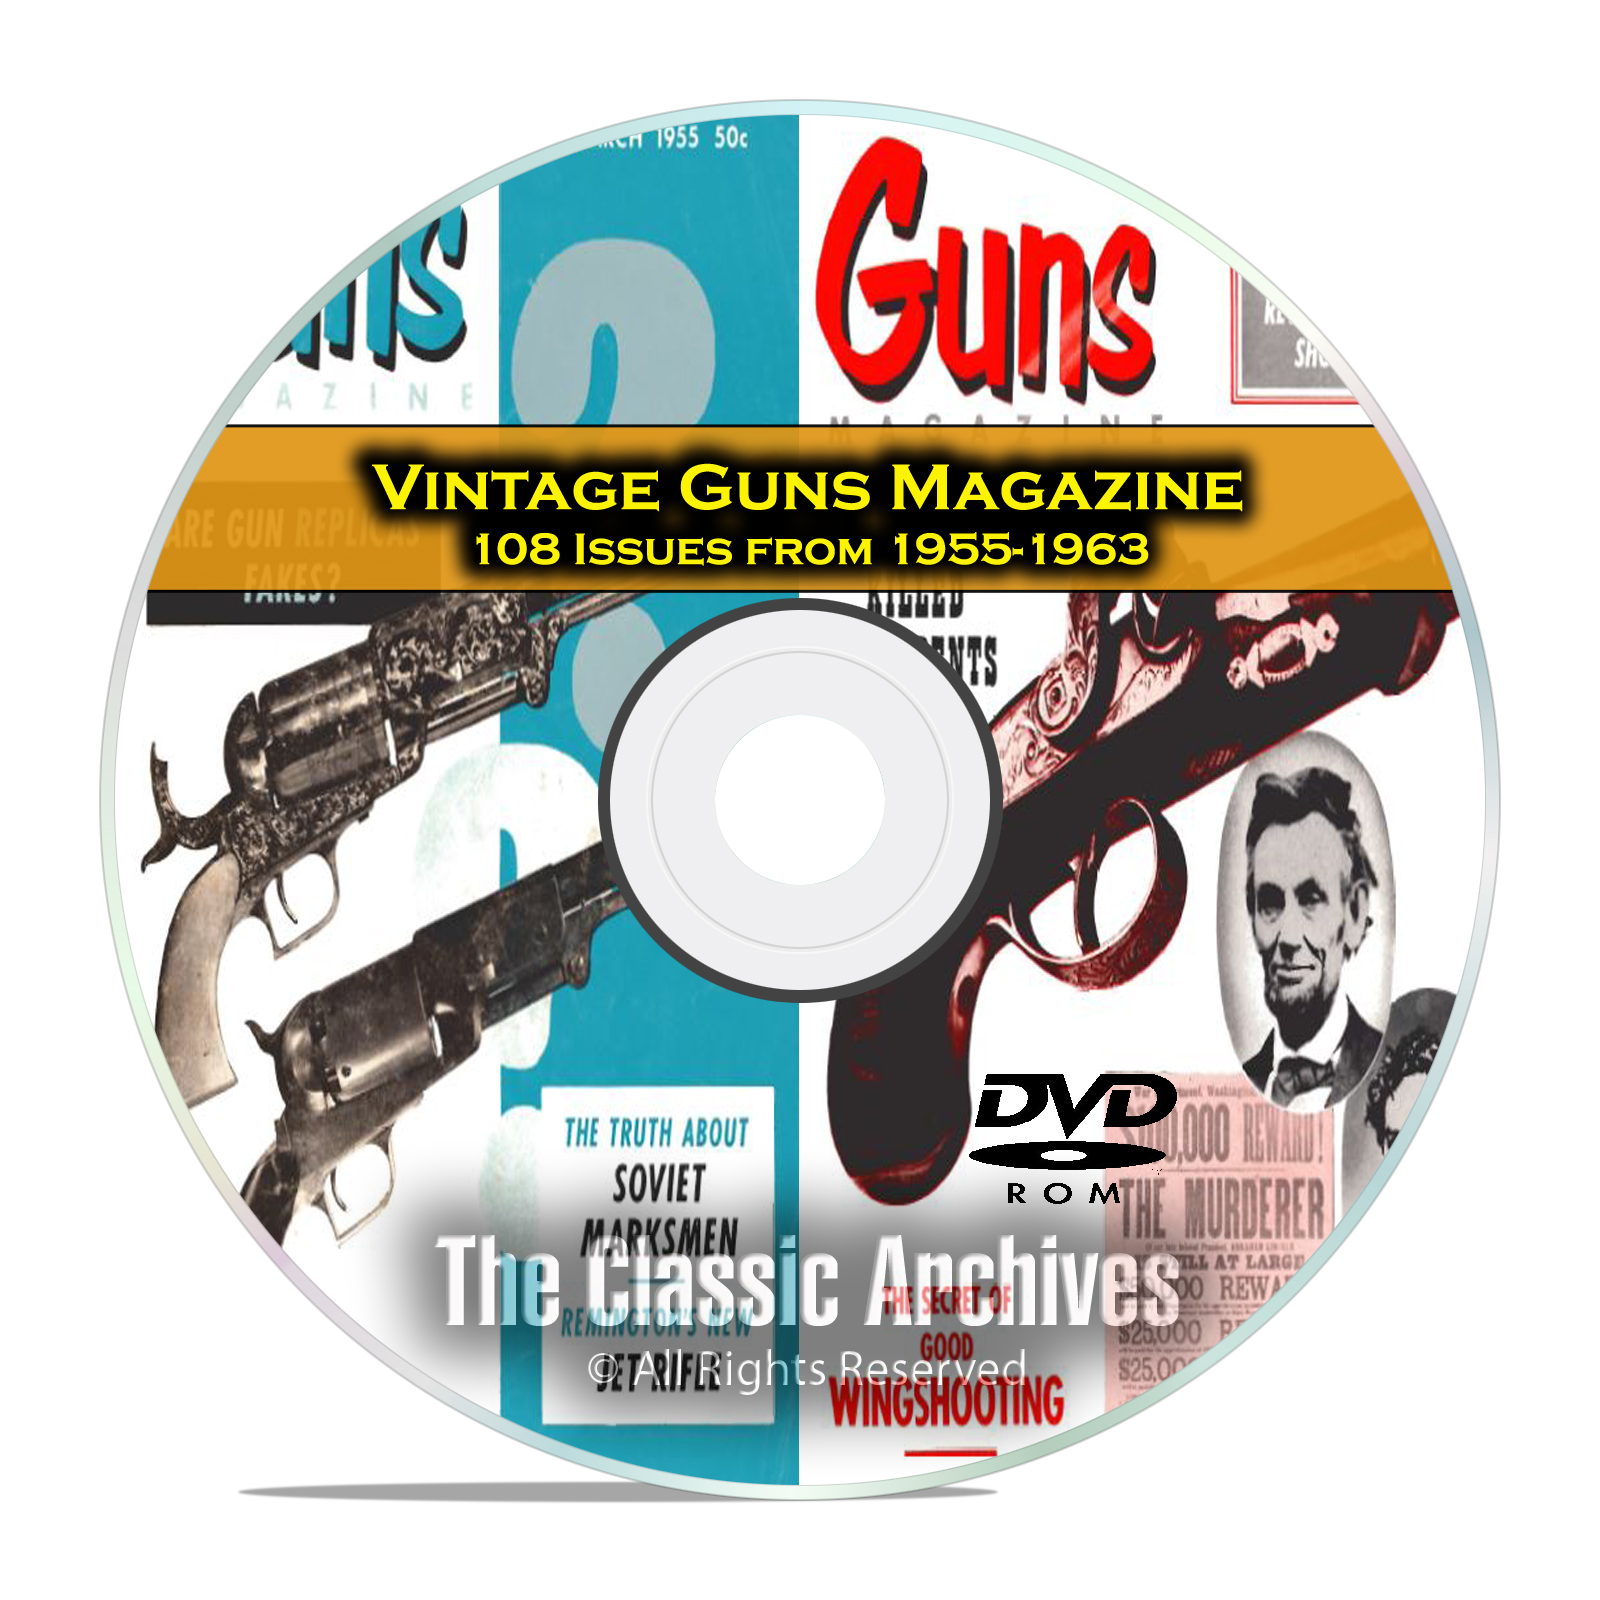 Guns Magazine, 108 Vintage Issues, 1955-1963, Reloading, Hunting Mag DVD